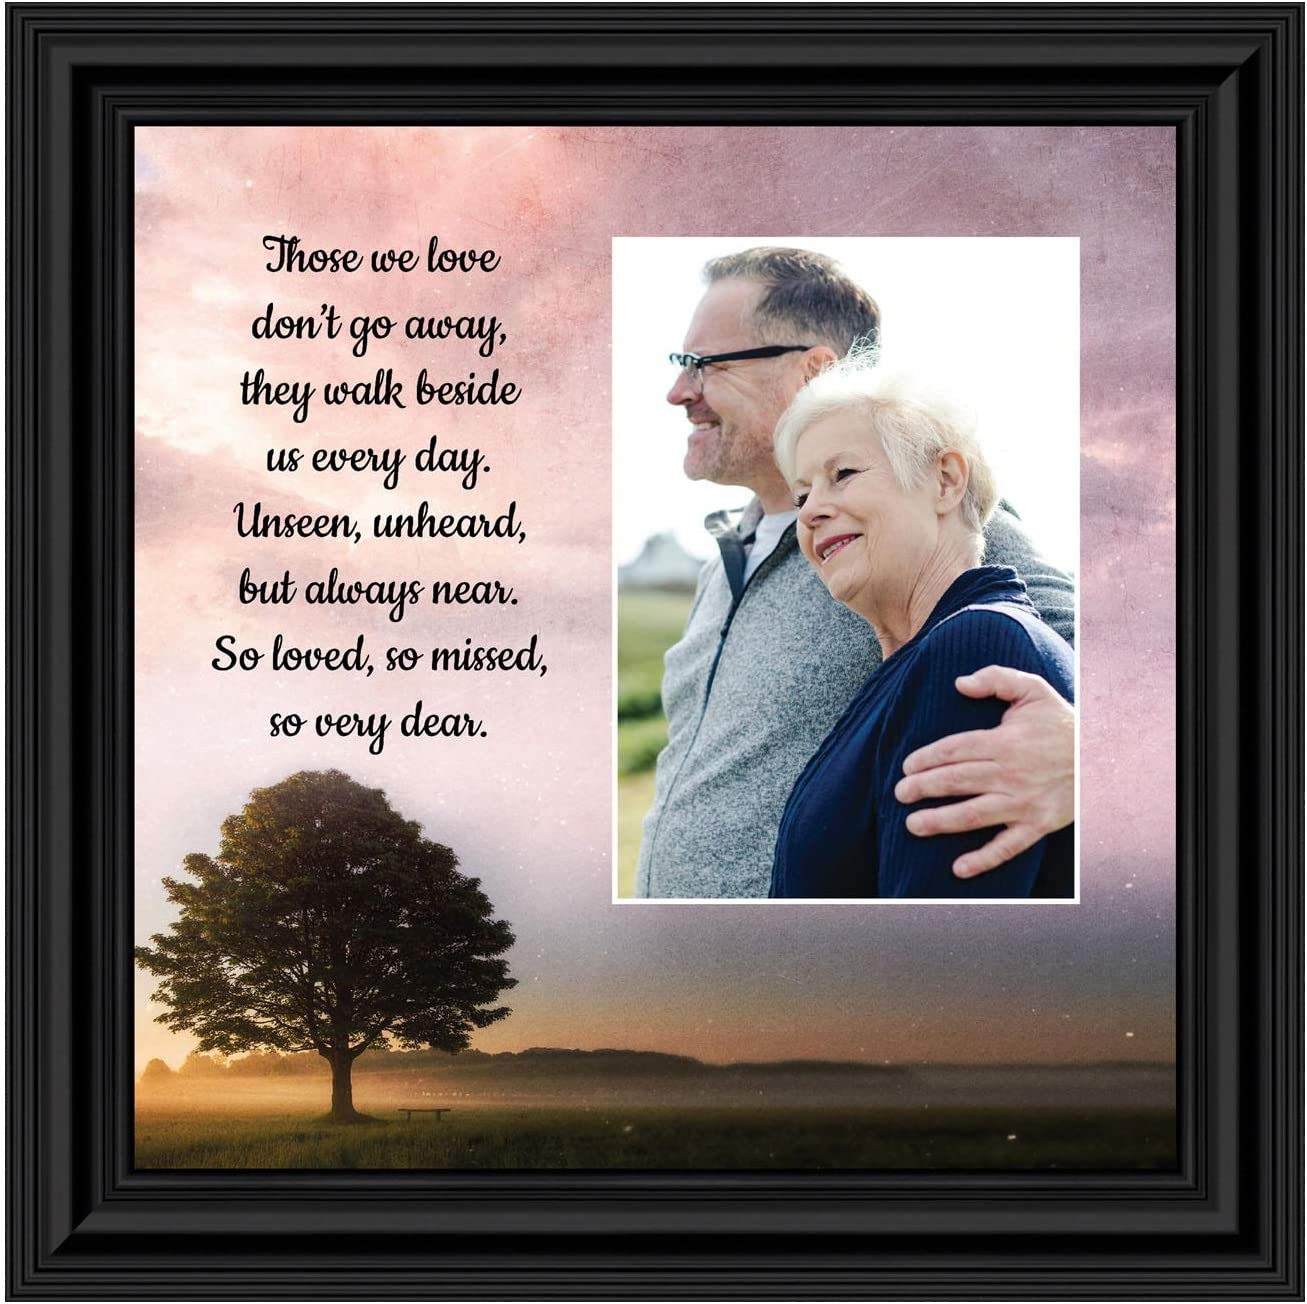 Those We Love Sympathy Gift Picture Frames, Memorial Gifts for Your Condolence Gift Baskets and Sympathy Cards, Bereavement Gifts, in Memory of Loved One, Framed Home Décor, 6433B